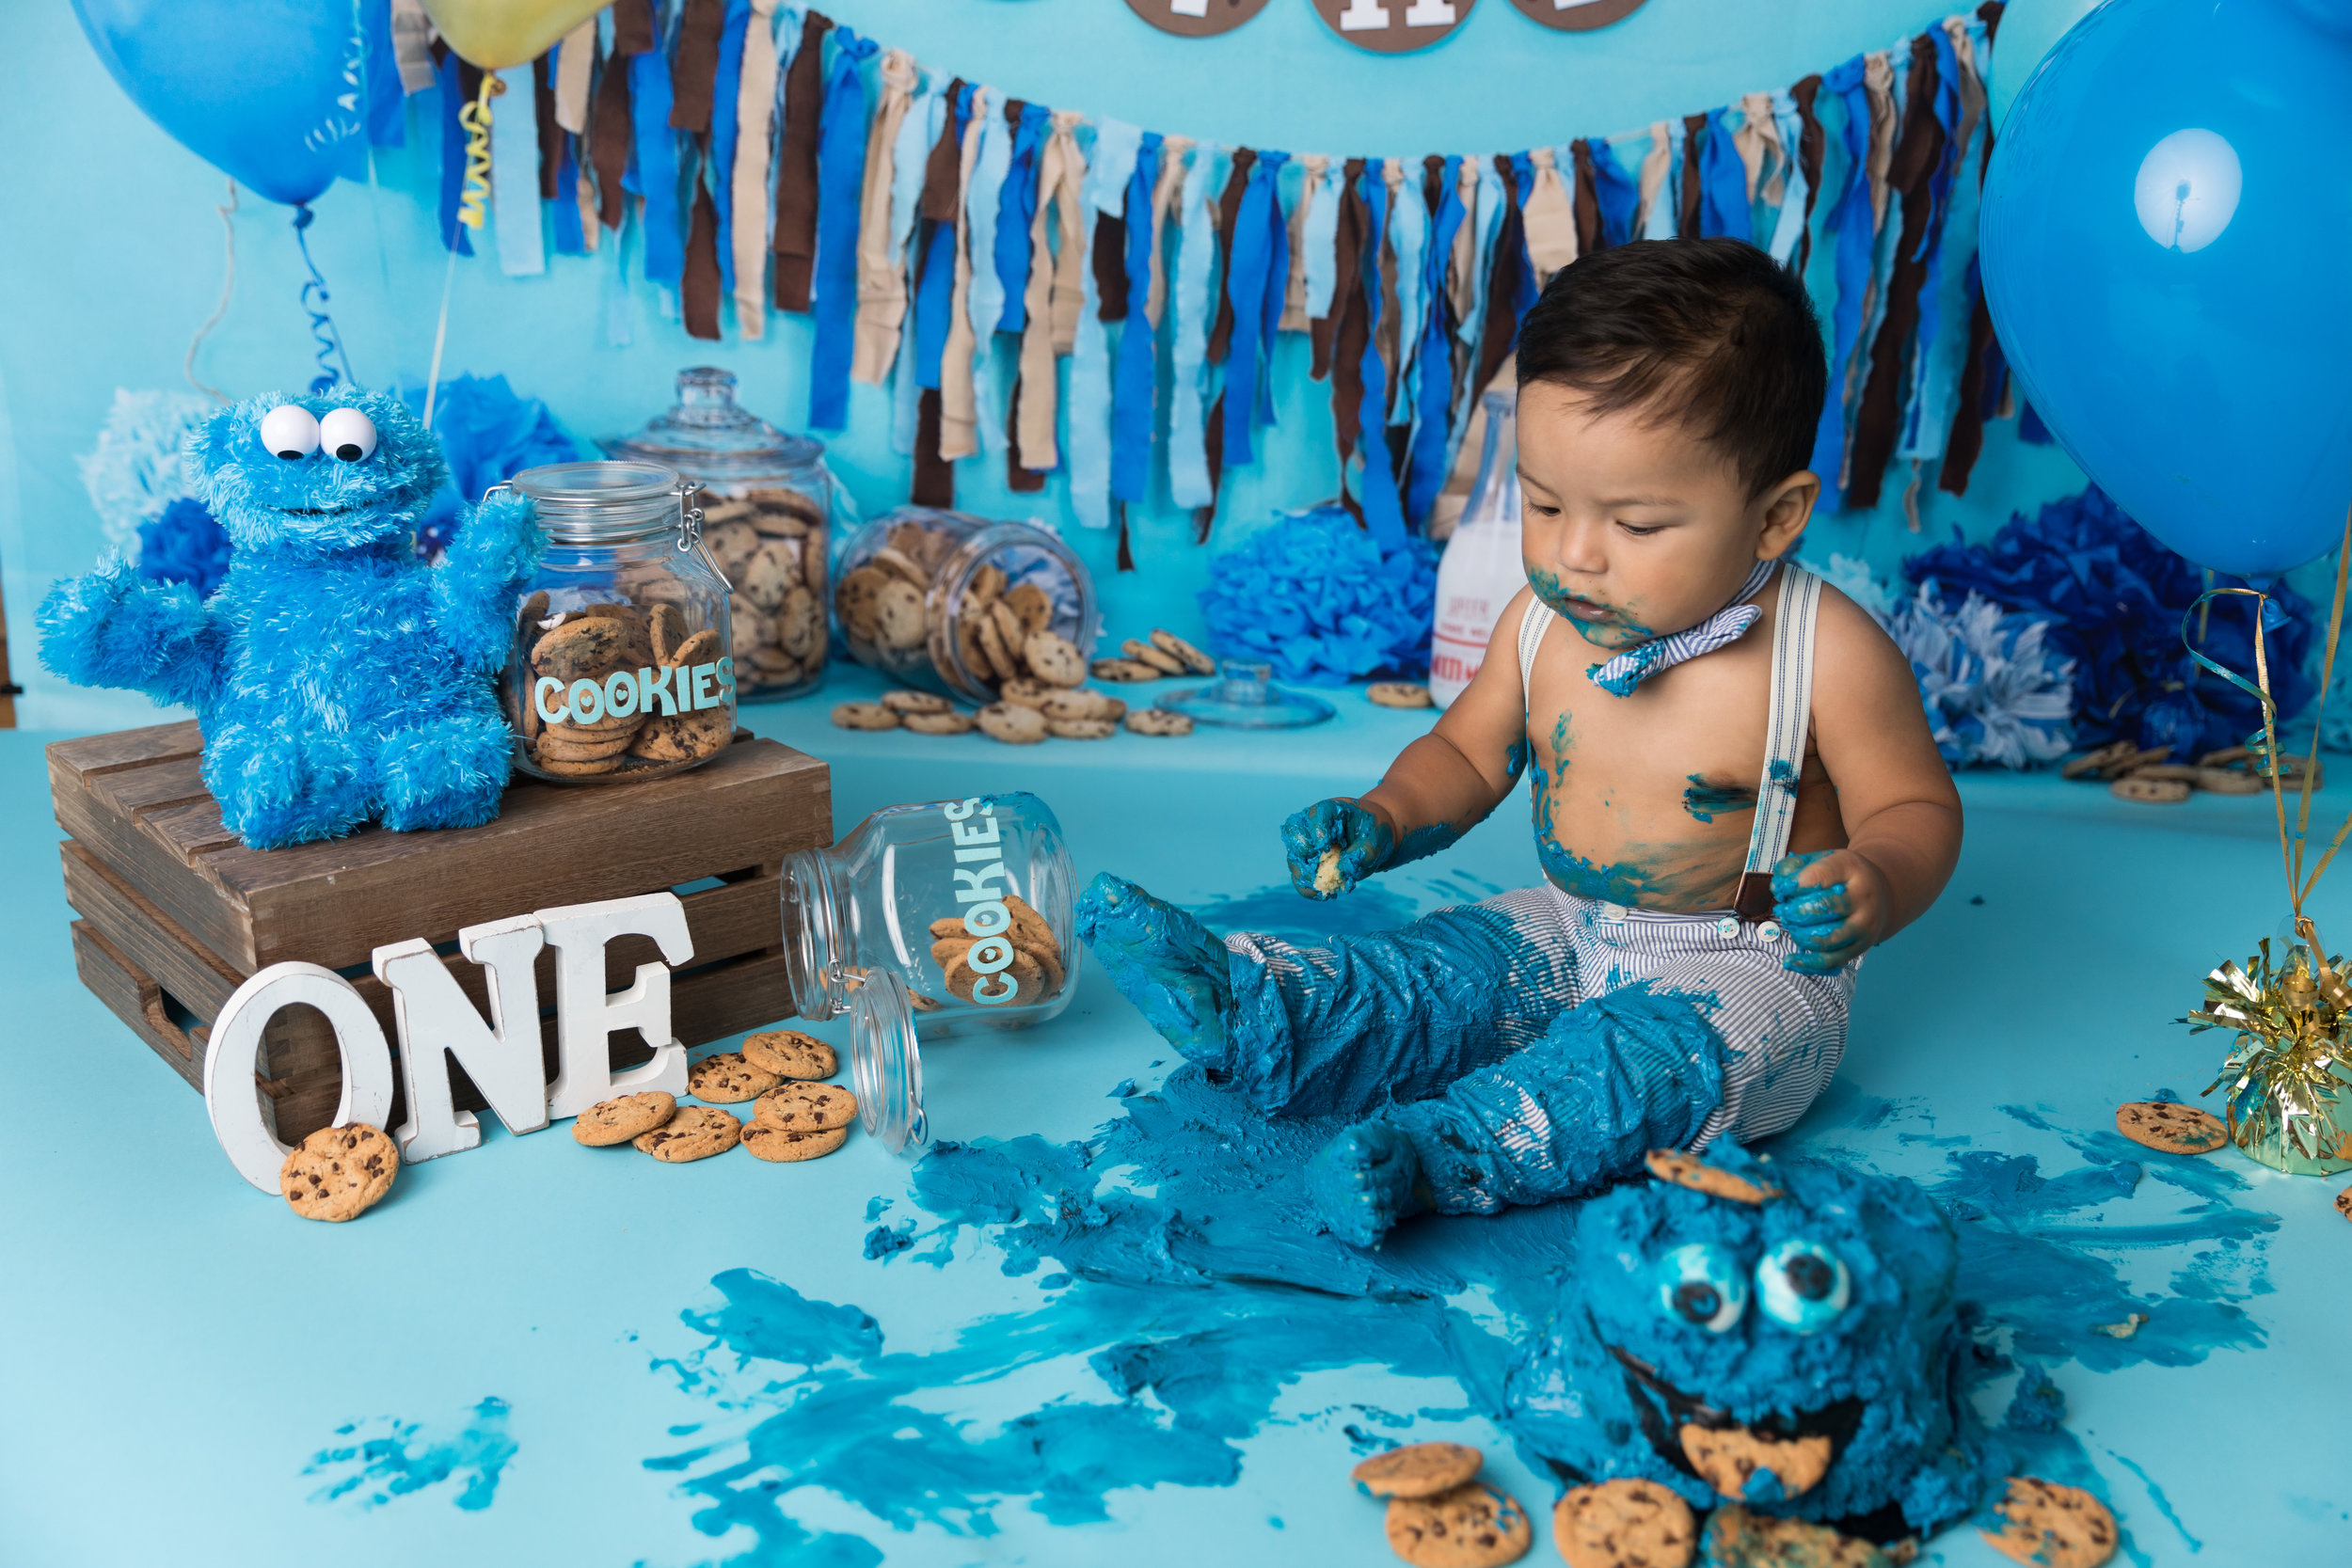 blue_babyboy_cakesmash_mess_cookiemonster